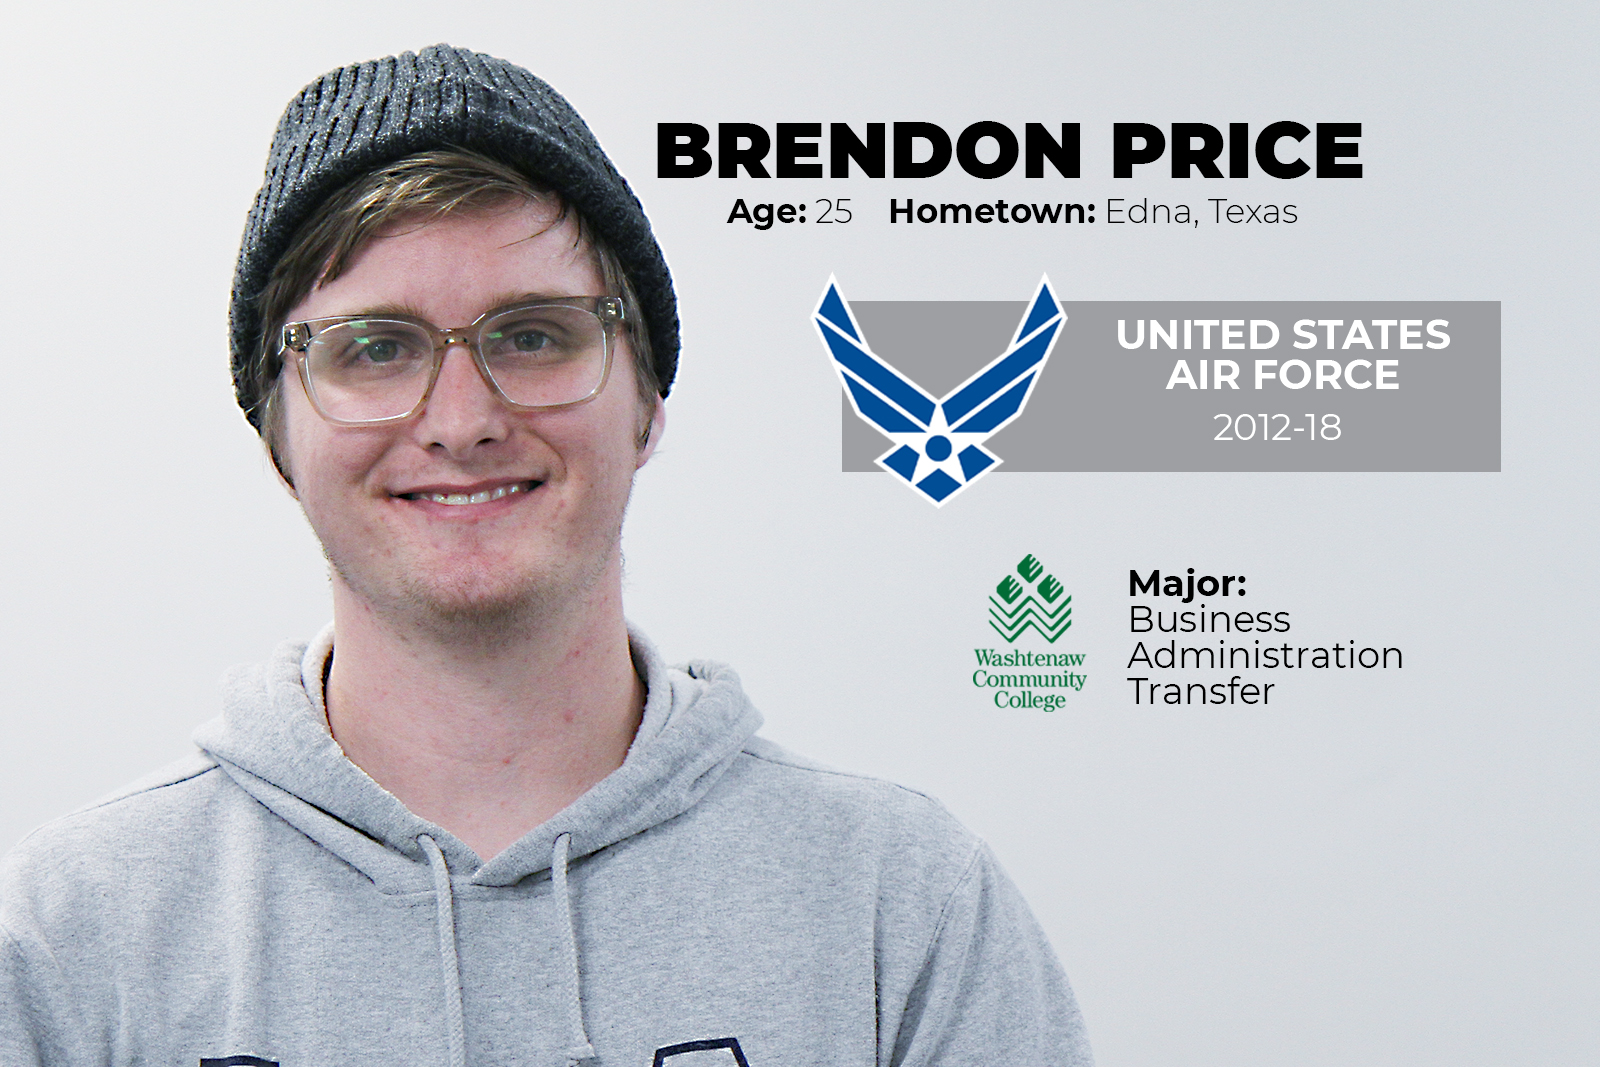 Brendon Price